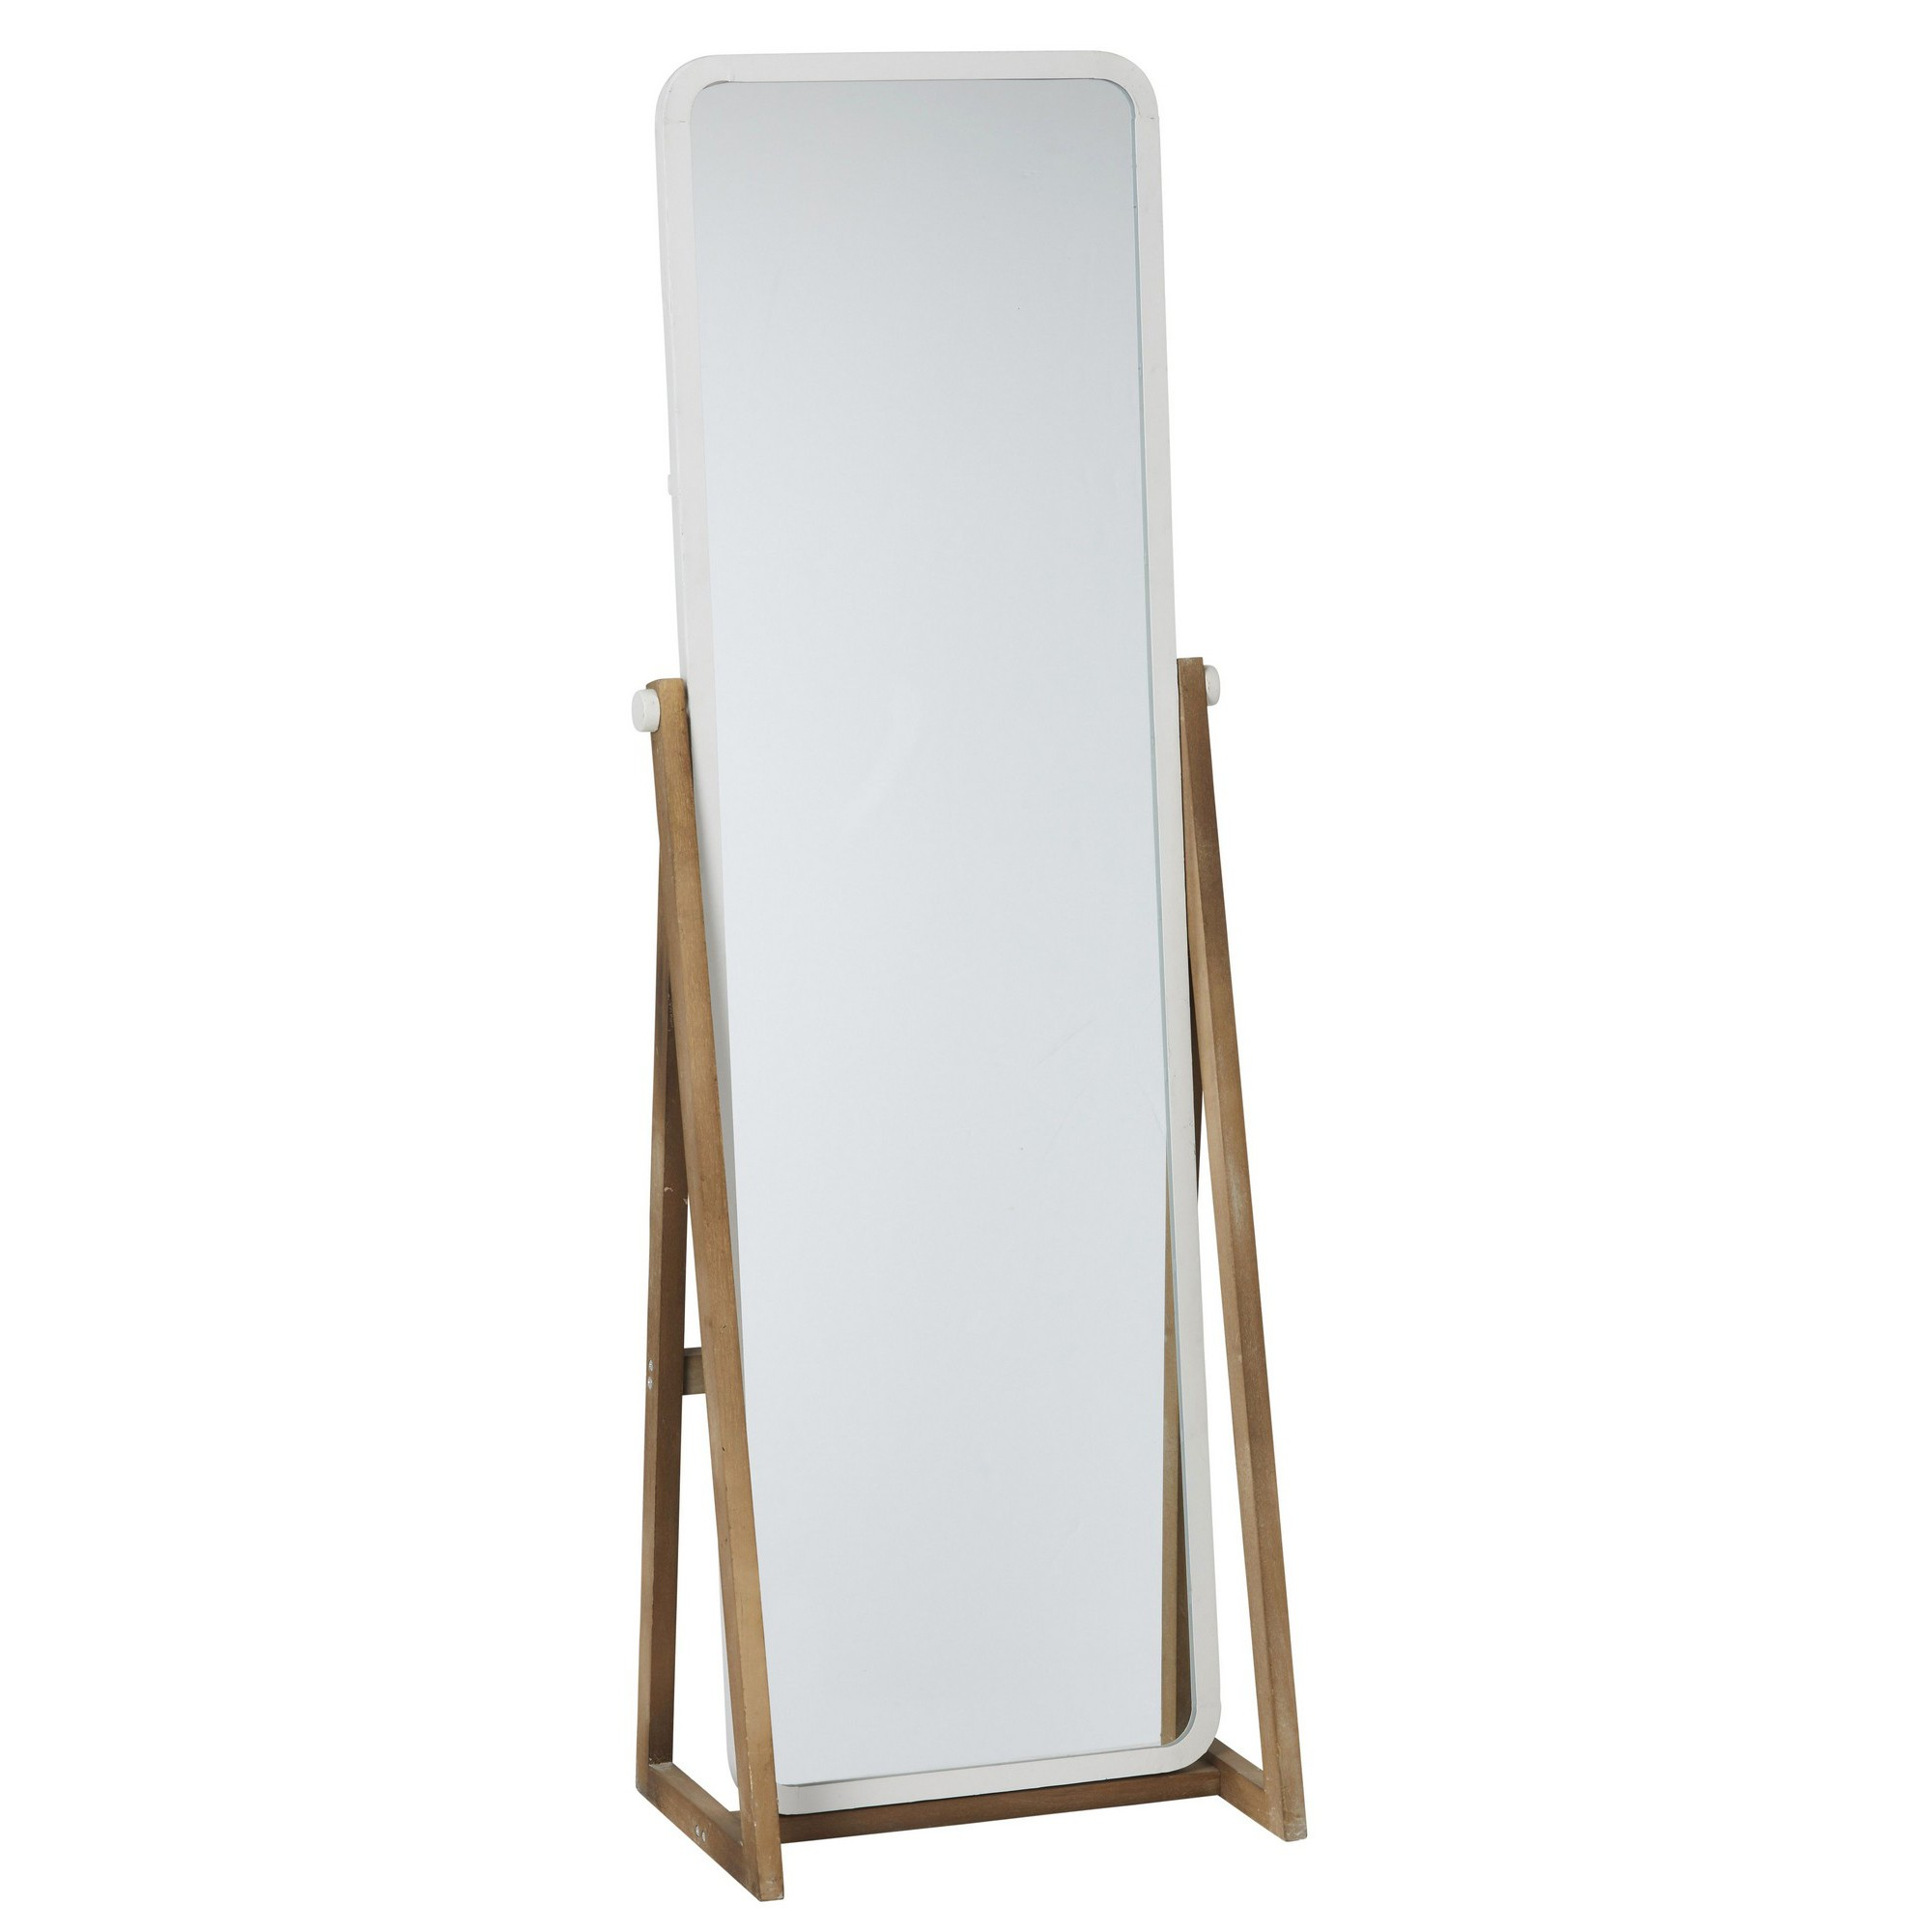 Thea Iron & Fir Timber Frame Cheval Mirror, 168cm